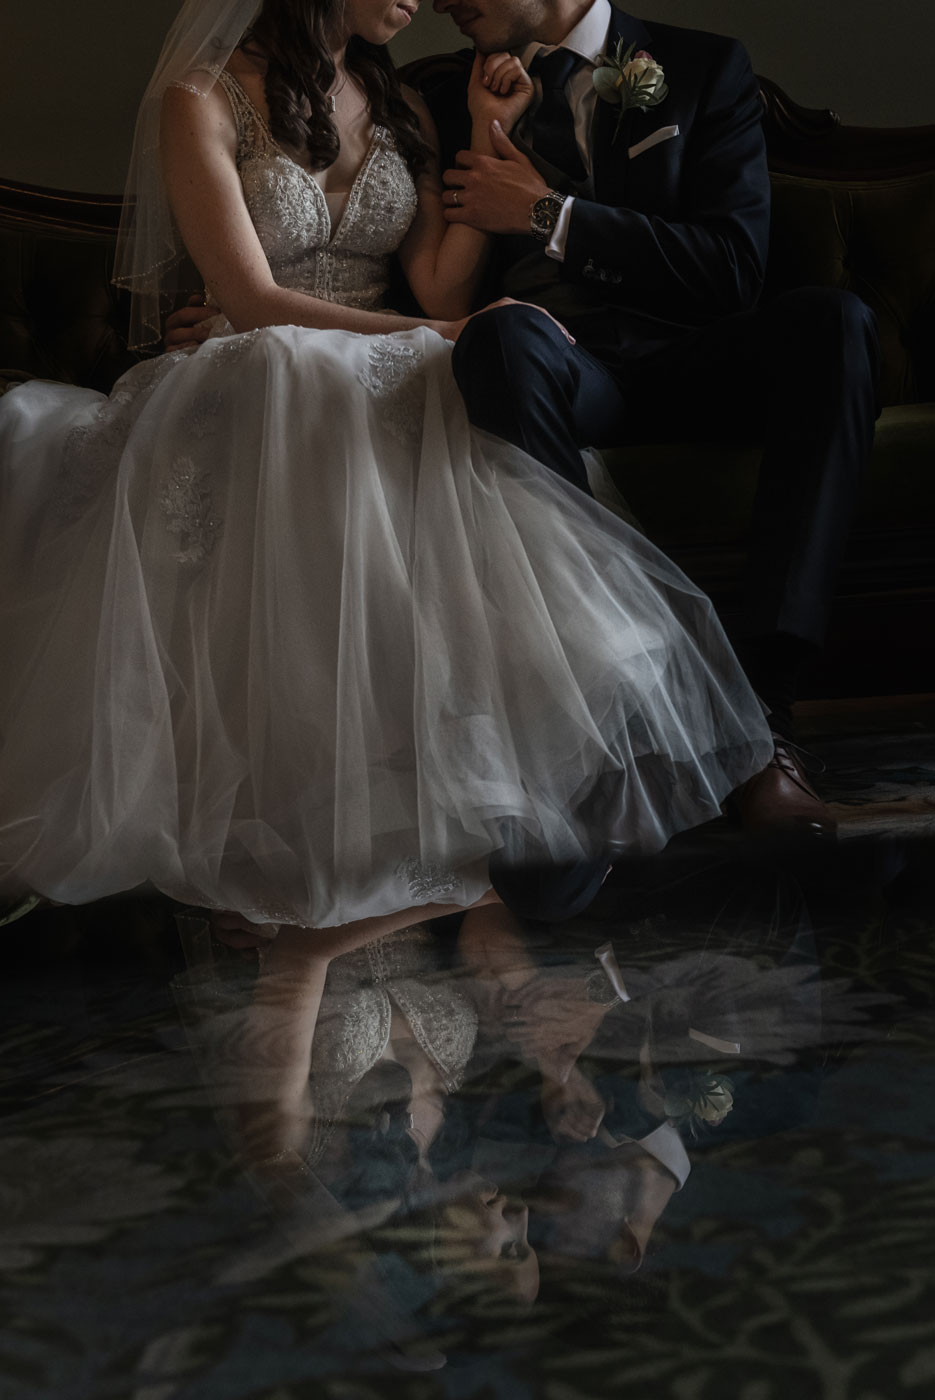 Reflection of bride and groom at Eynsham Hall